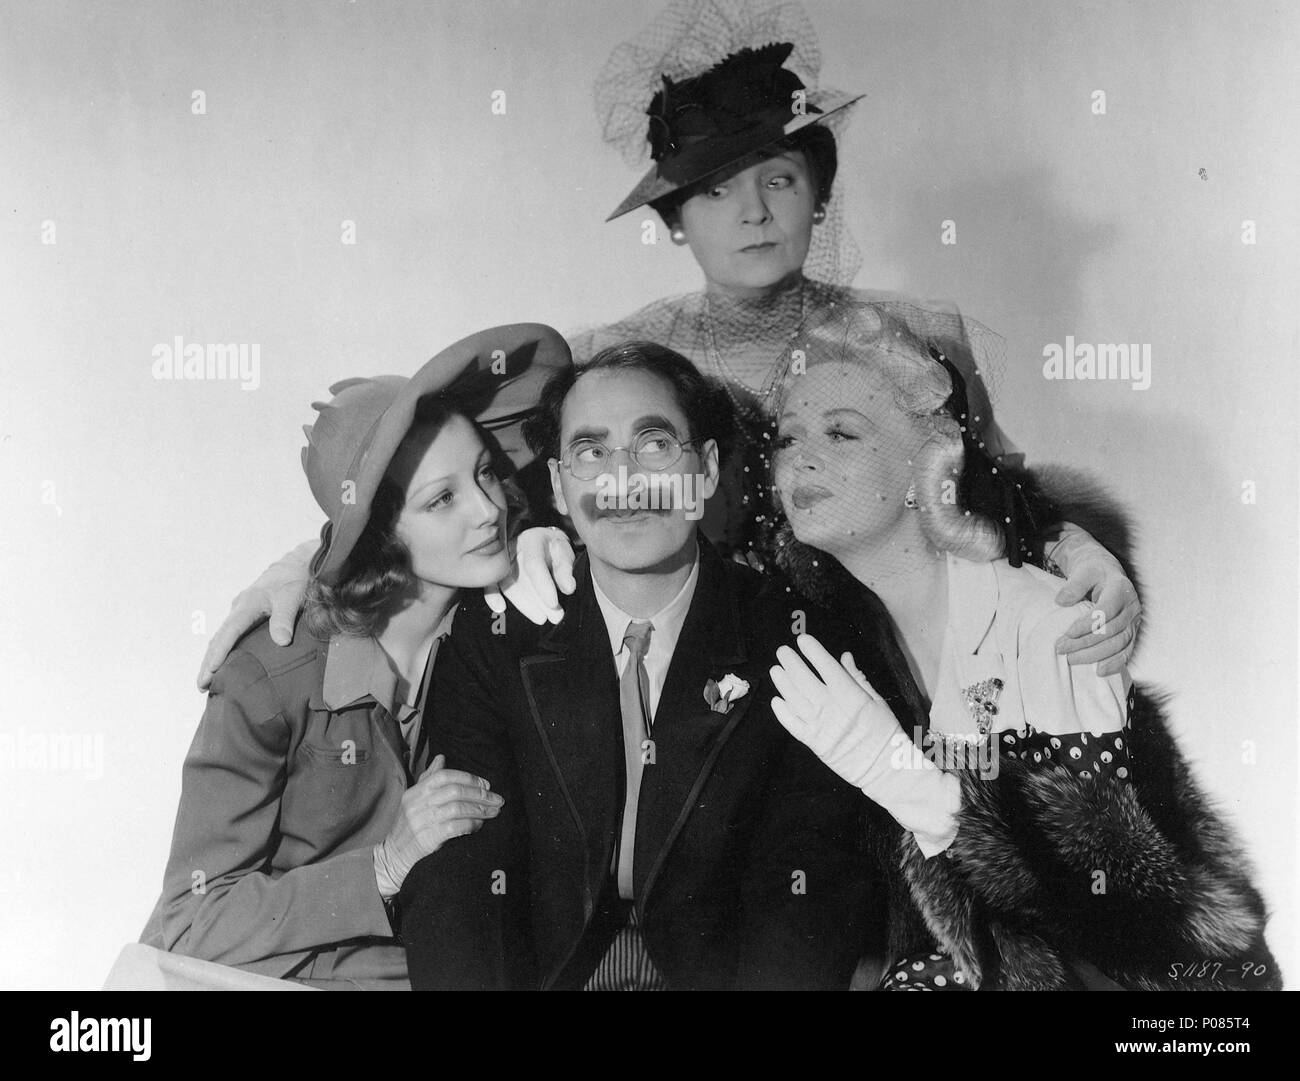 Original Film Title: THE BIG STORE.  English Title: THE BIG STORE.  Film Director: CHARLES REISNER.  Year: 1941.  Stars: GROUCHO MARX; MARGARET DUMONT; VIRGINIA GREY. Credit: M.G.M / Album - Stock Image